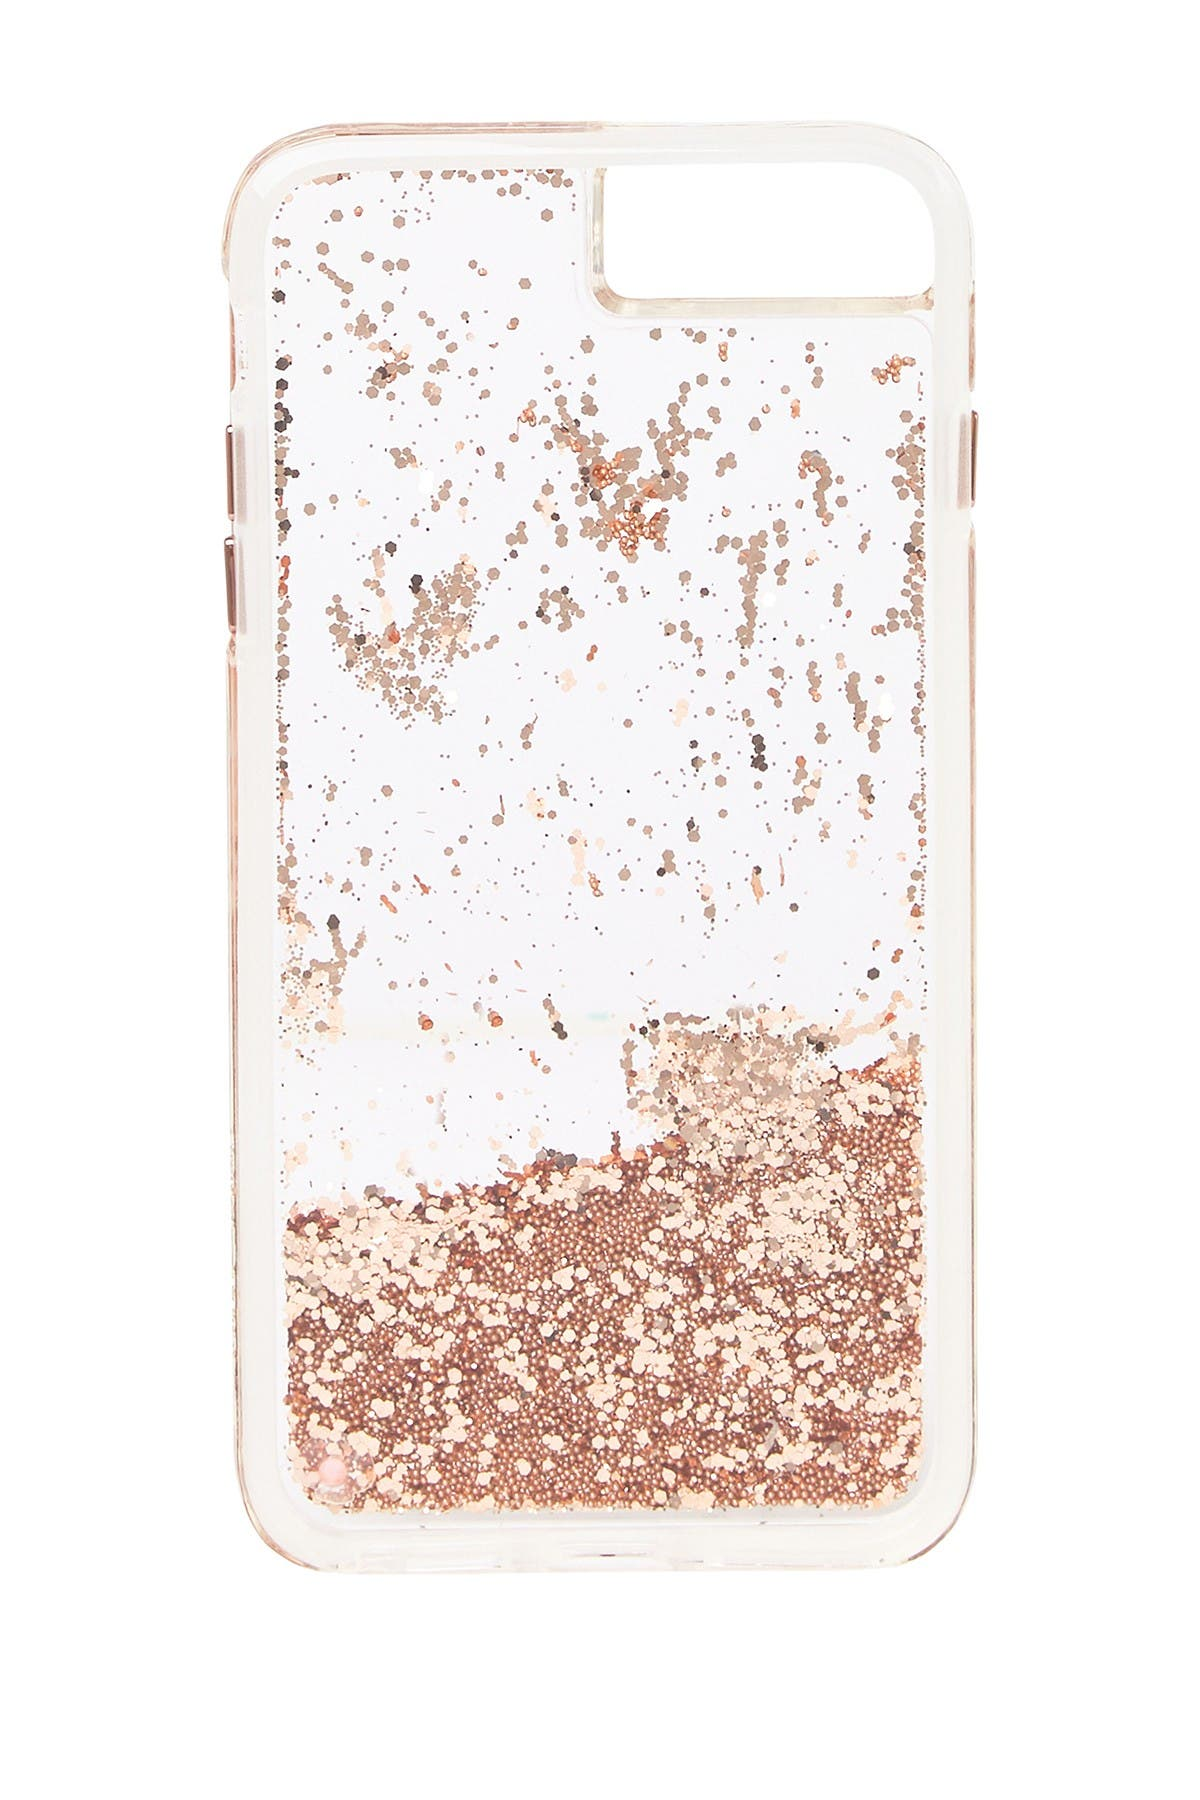 Image of Case-Mate iPhone 8 Plus Waterfall - Gold Phone Case